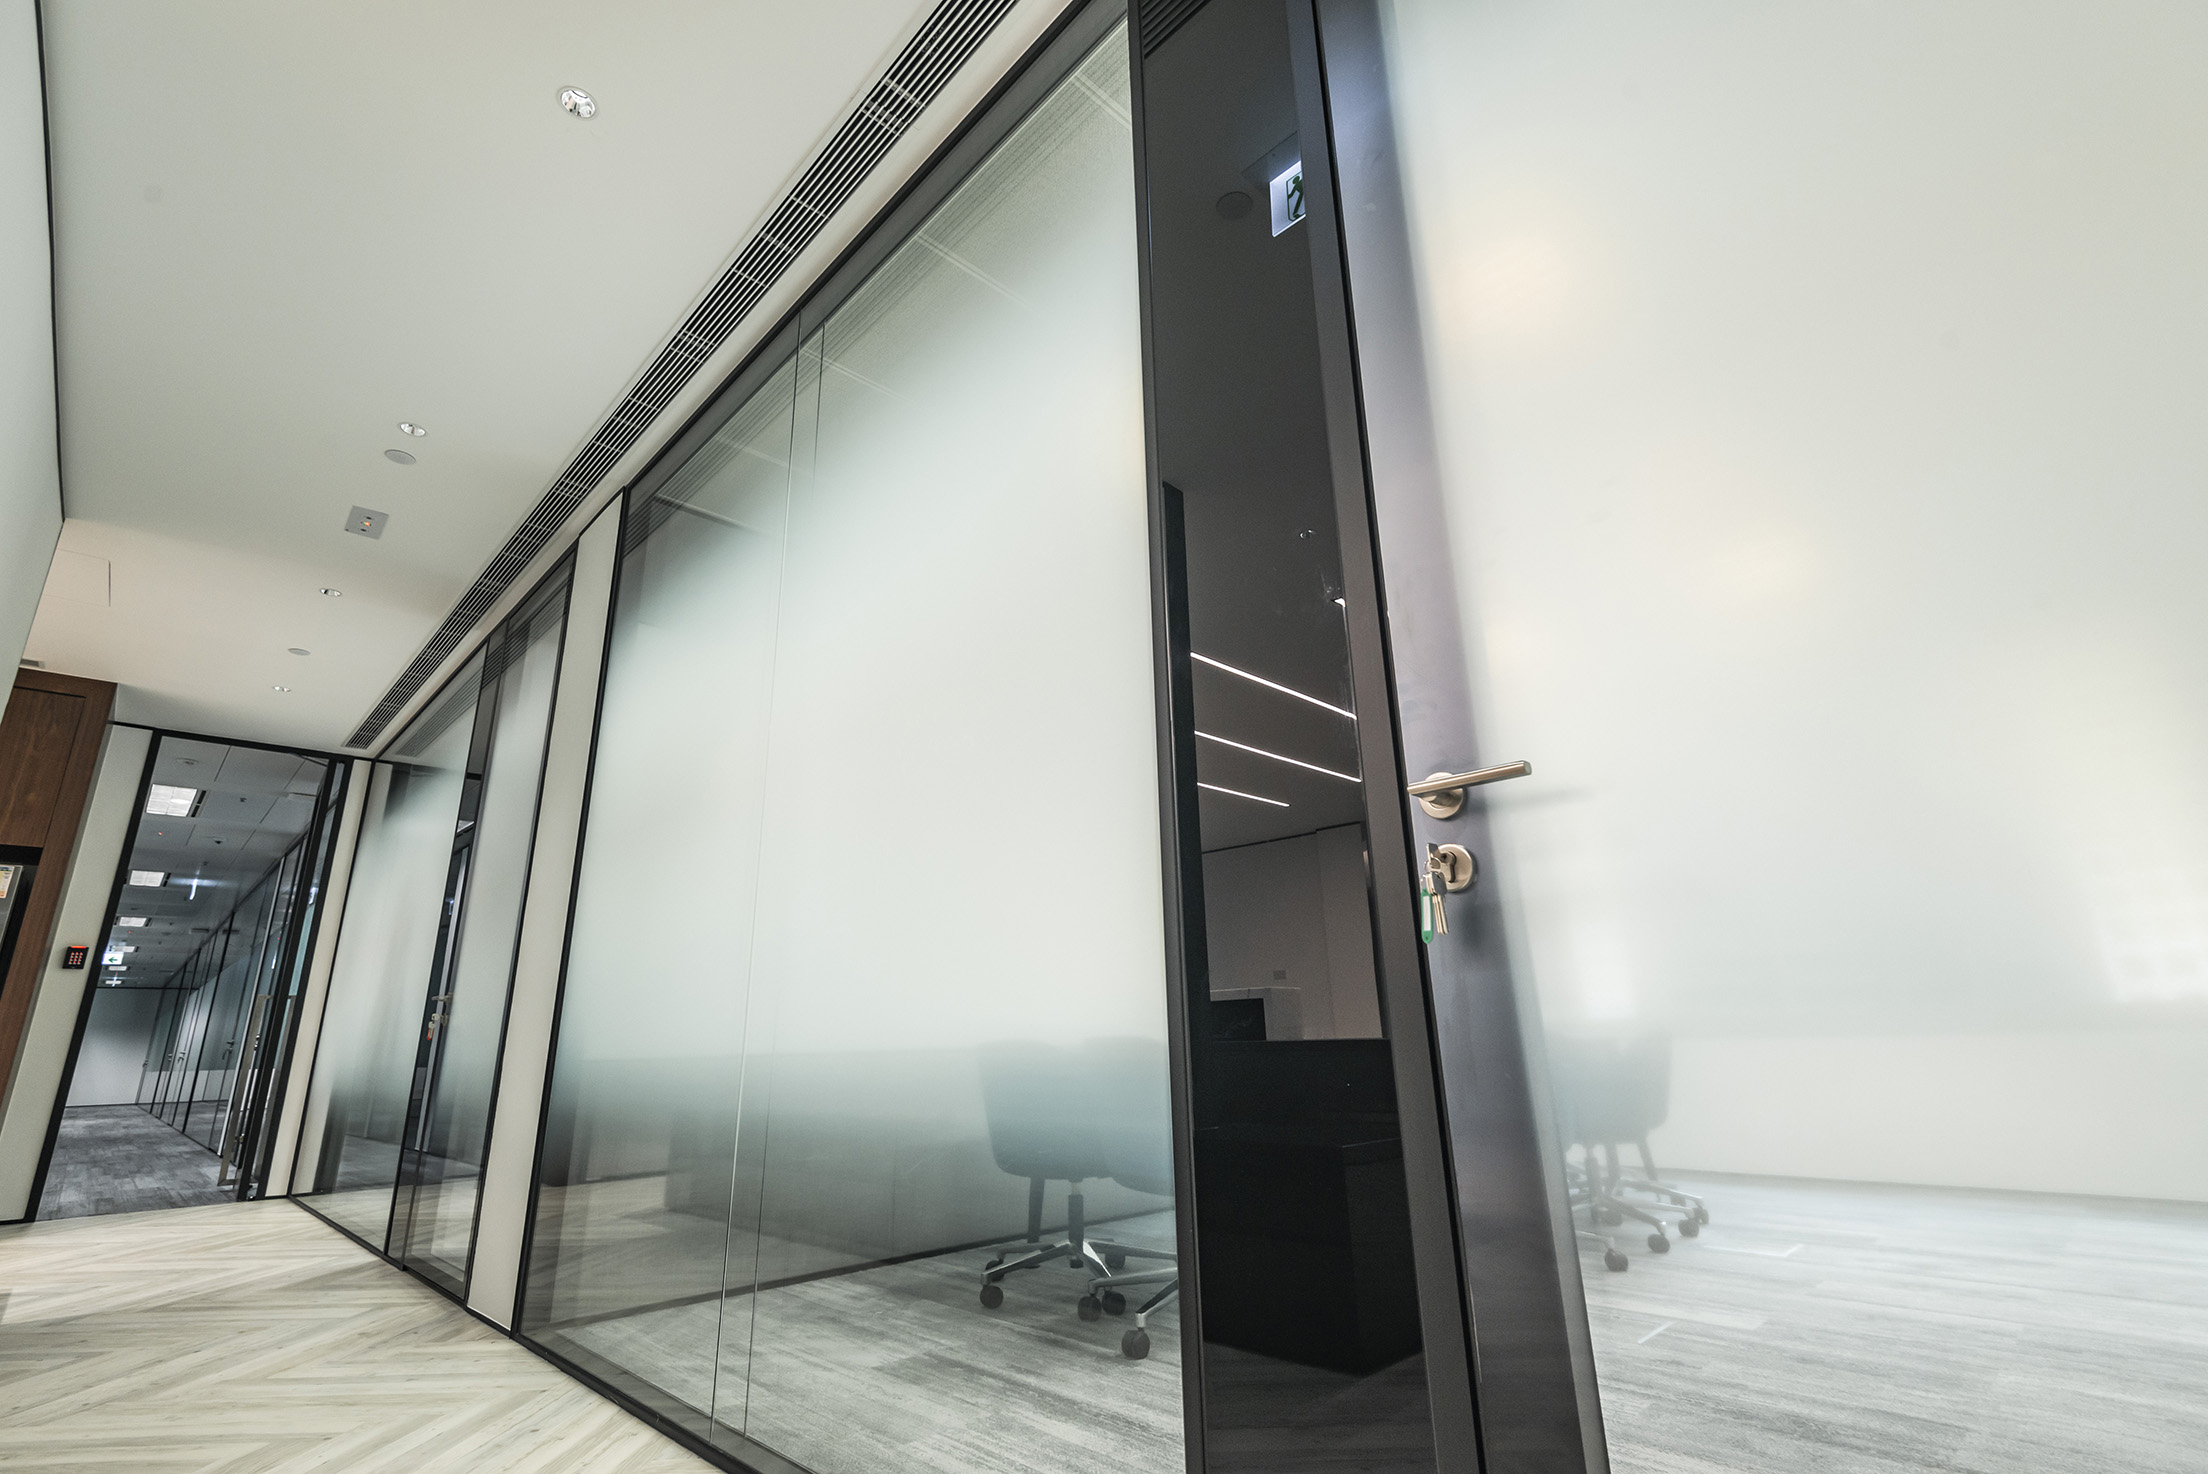 jeb-partitions-x-series-office-hk-03.jpg